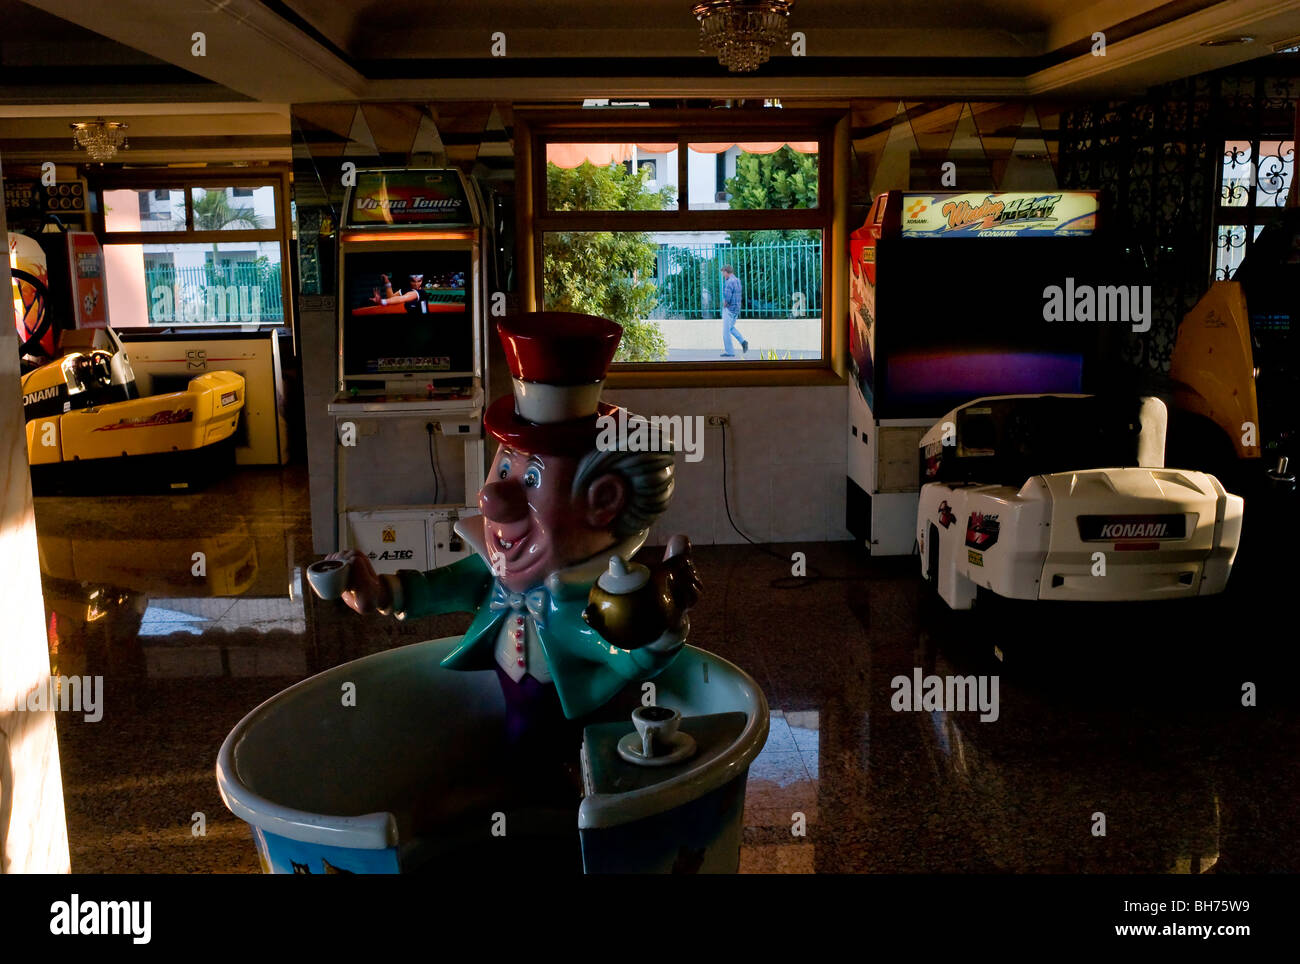 An old amusement arcade indoors in the Kasbah Centre in Playa del Ingles Gran Canaria - Stock Image